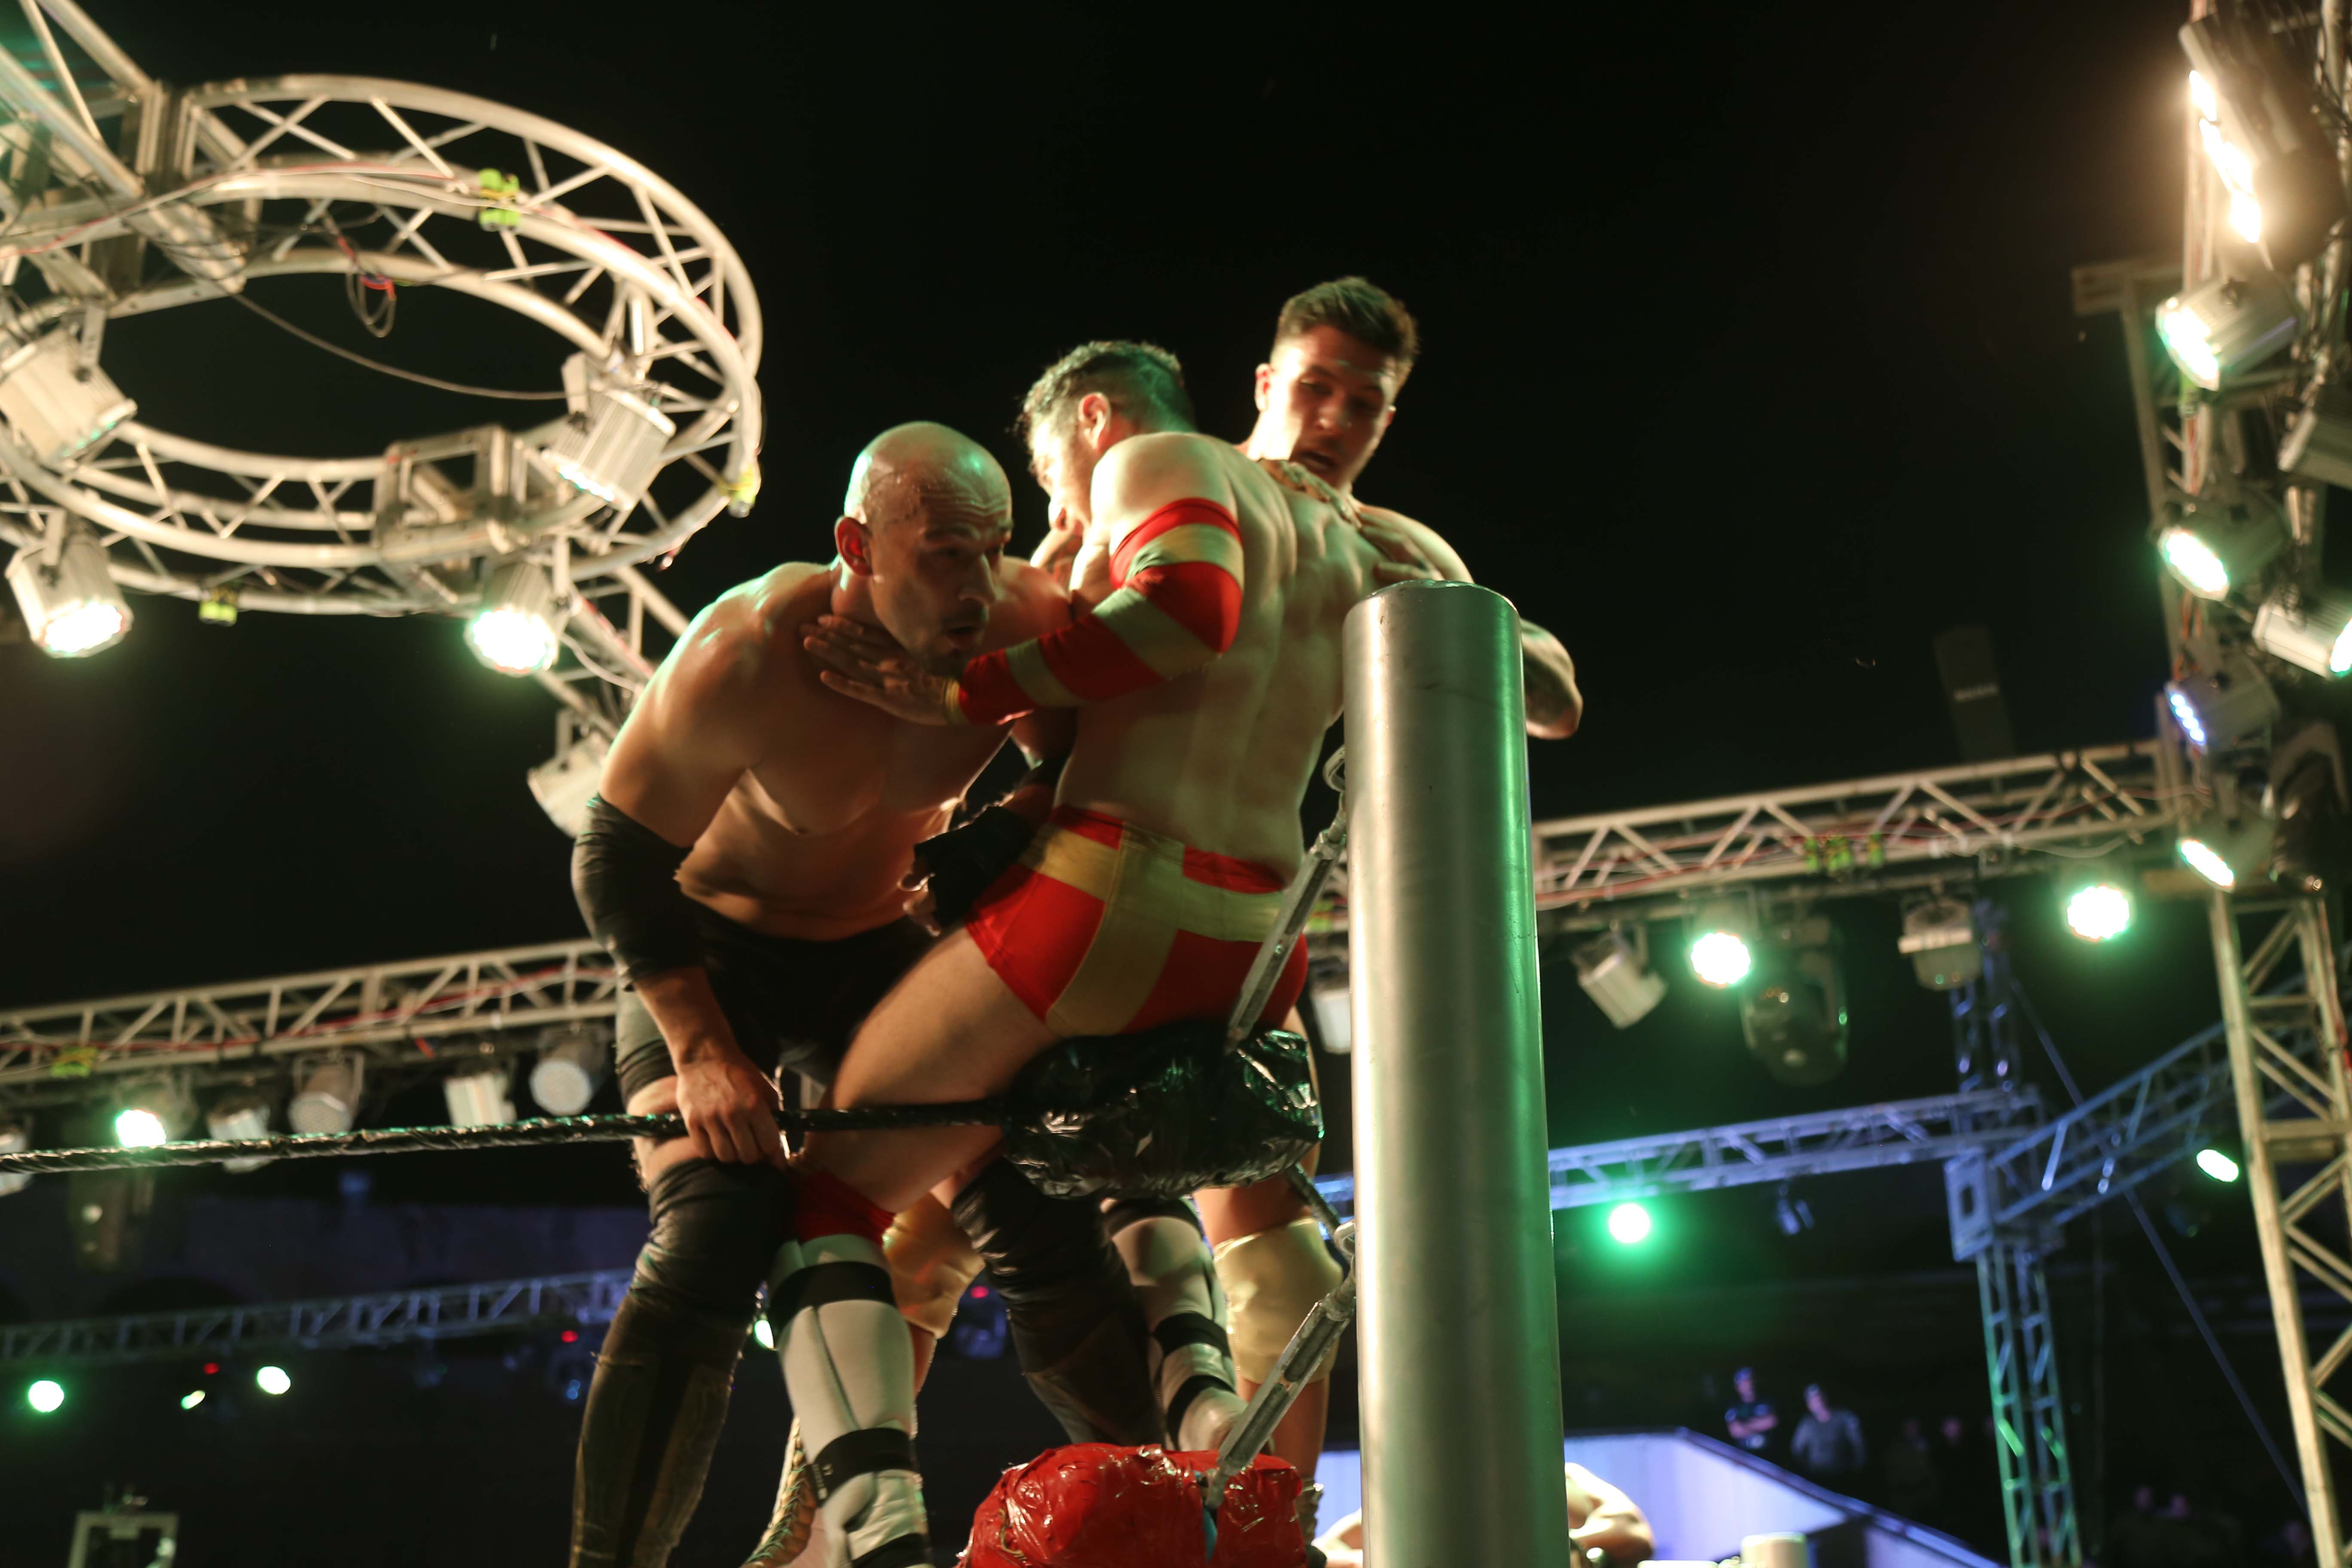 International Wrestlers Return To Pakistan To #FightForPeace at Ring Of Pakistan Season 2K18 – Sterling Media